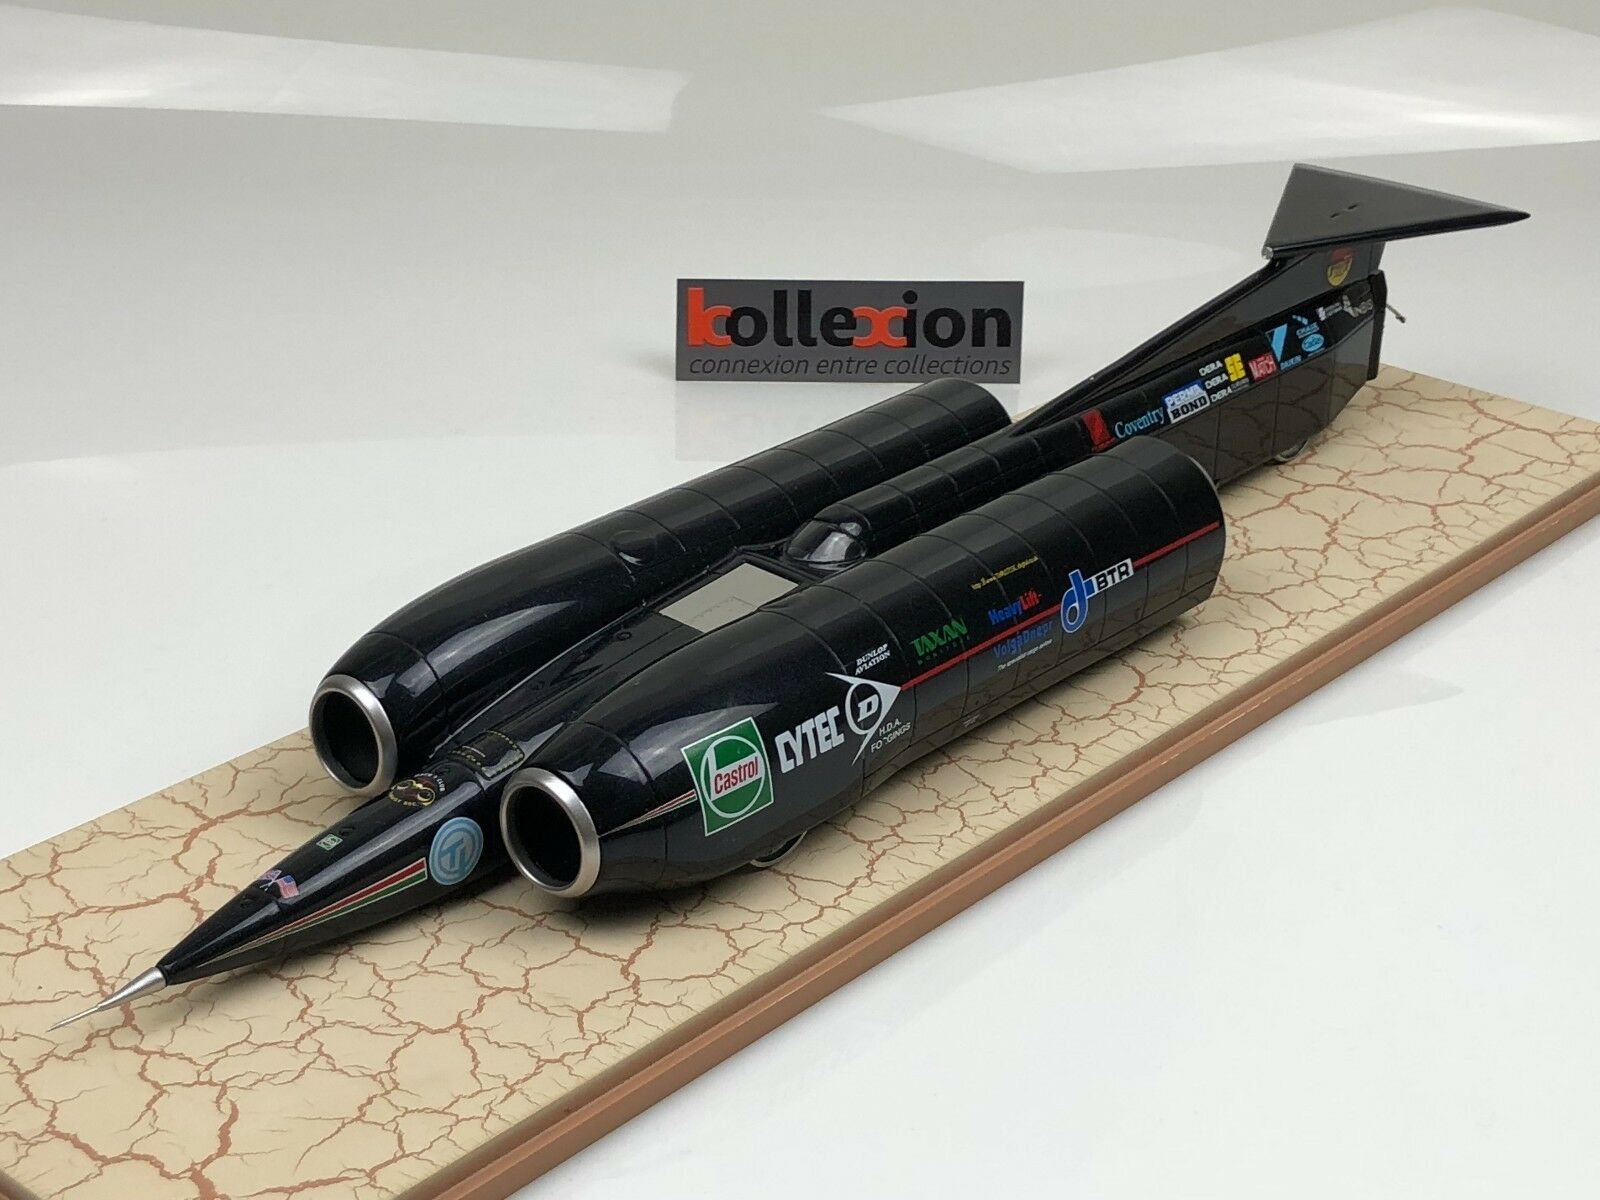 Rigby's thrust ssc record nero Rock 1997 763 mph Mach 1.02 andy verde 1.43